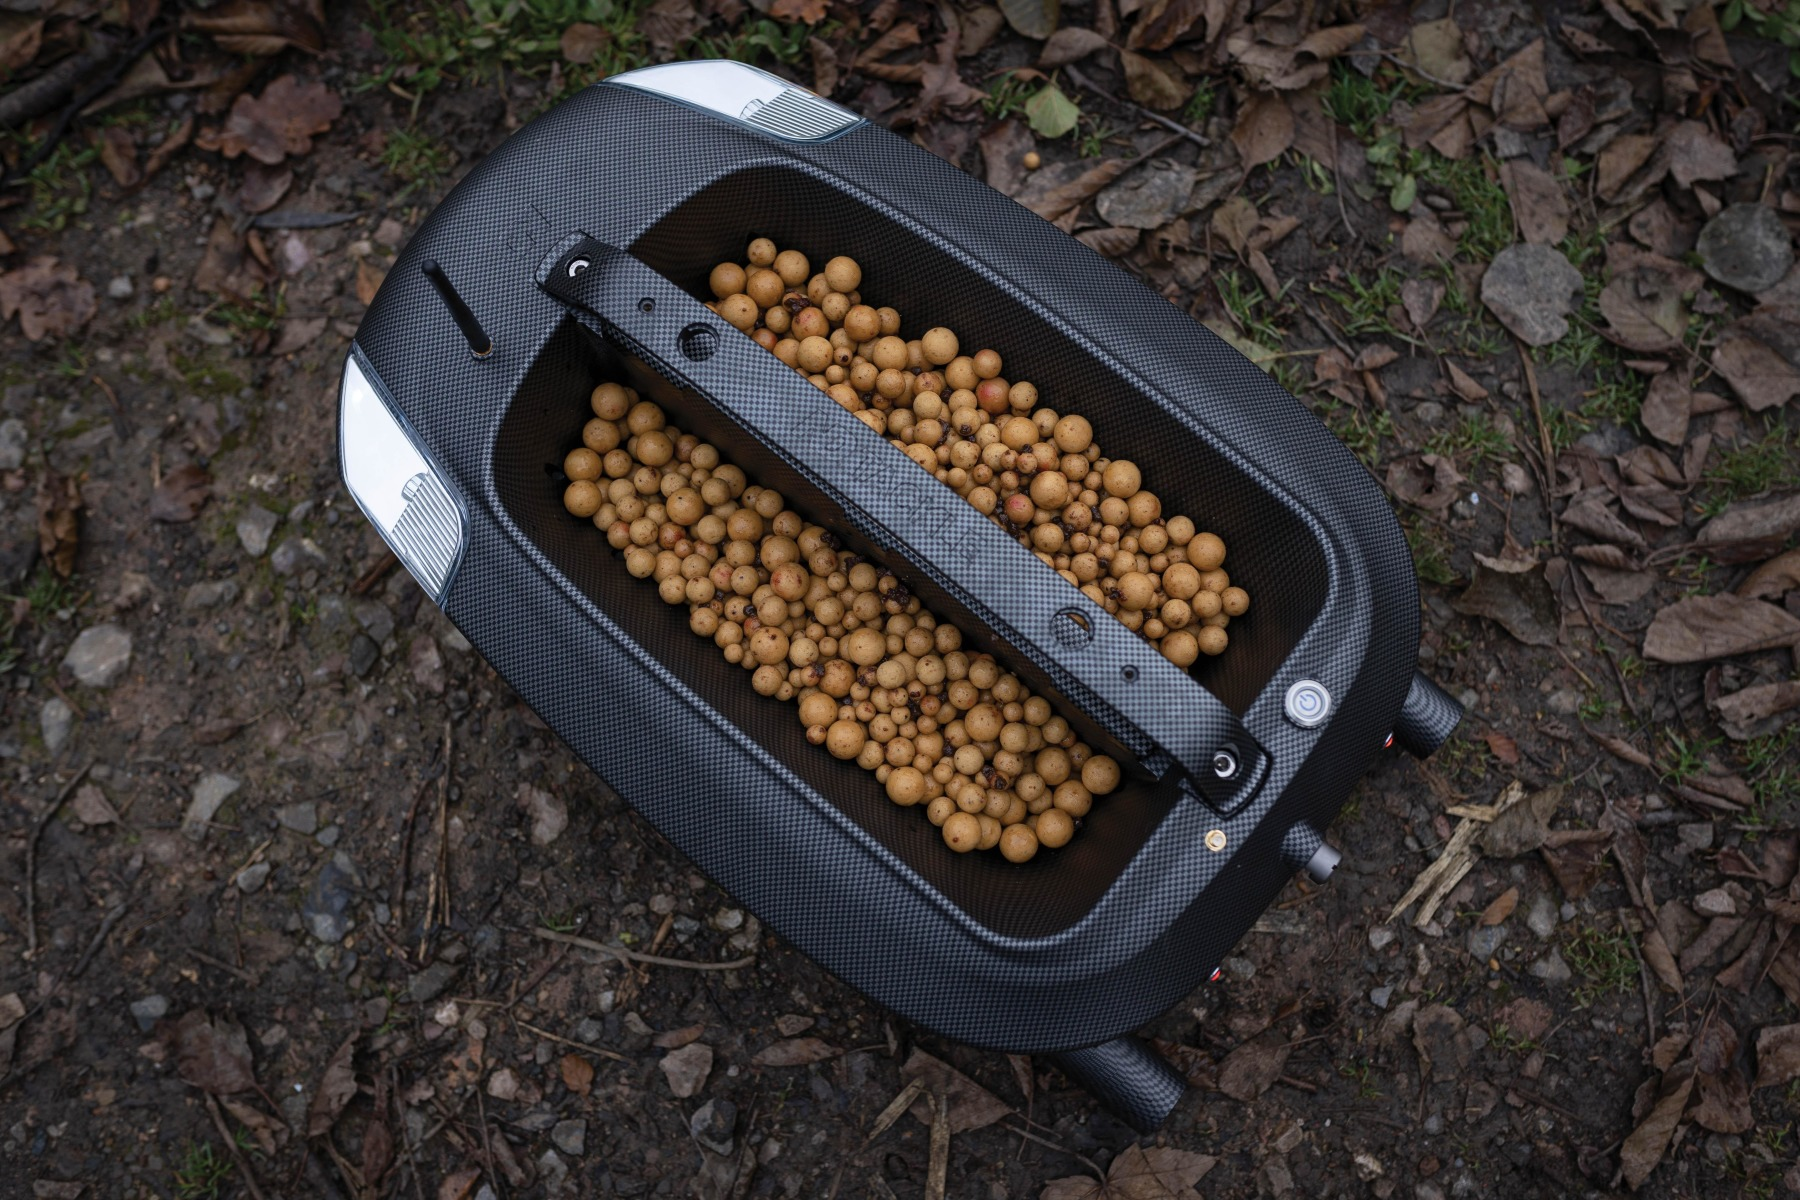 The two hoppers can accommodate 1.5kg of bait each and are independently controlled.